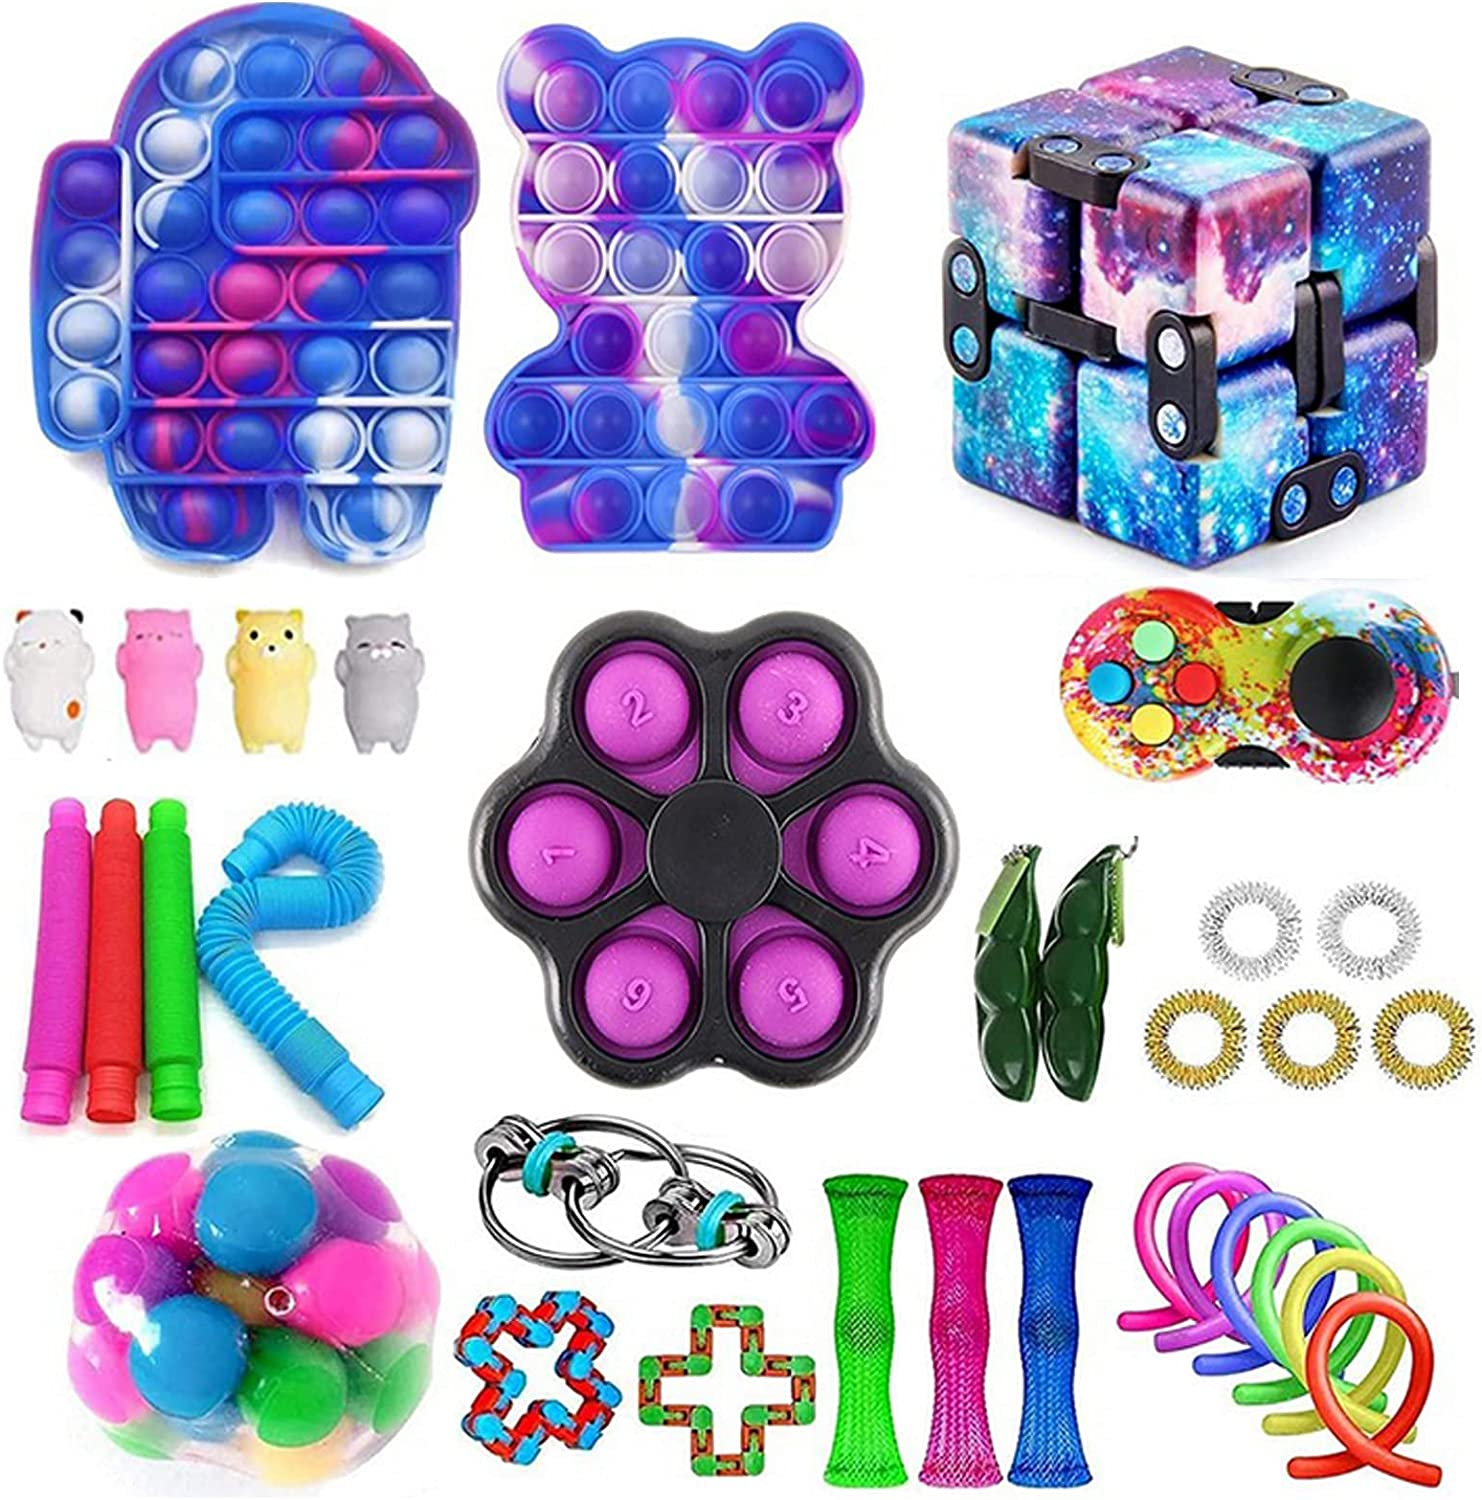 34pcs Fidget Toys Set Anti-Anxiety Block To Packs Animer and price revision Limited time cheap sale